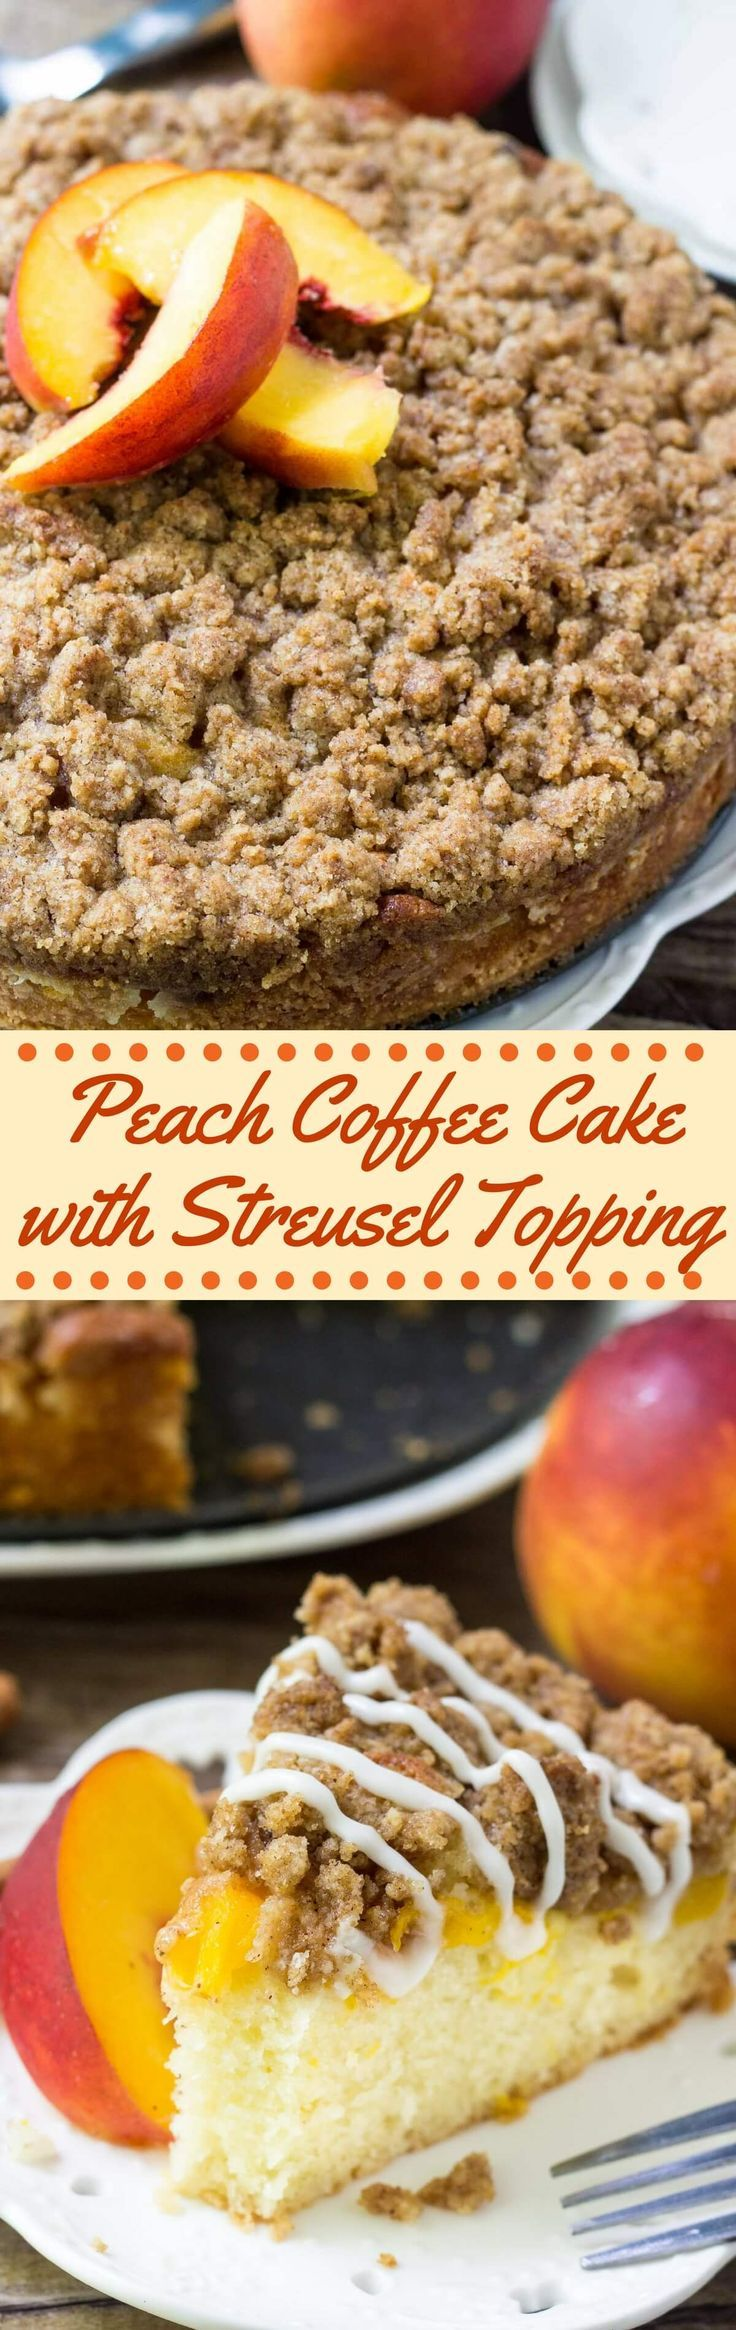 This Peach Coffee Cake with streusel topping is the perfect recipe for late summer. Moist vanilla cake, juicy peaches and crunchy cinnamon streusel. Make it with fresh or canned peaches - either way, you'll love this easy coffee cake recipe. via @ohsweetbasil